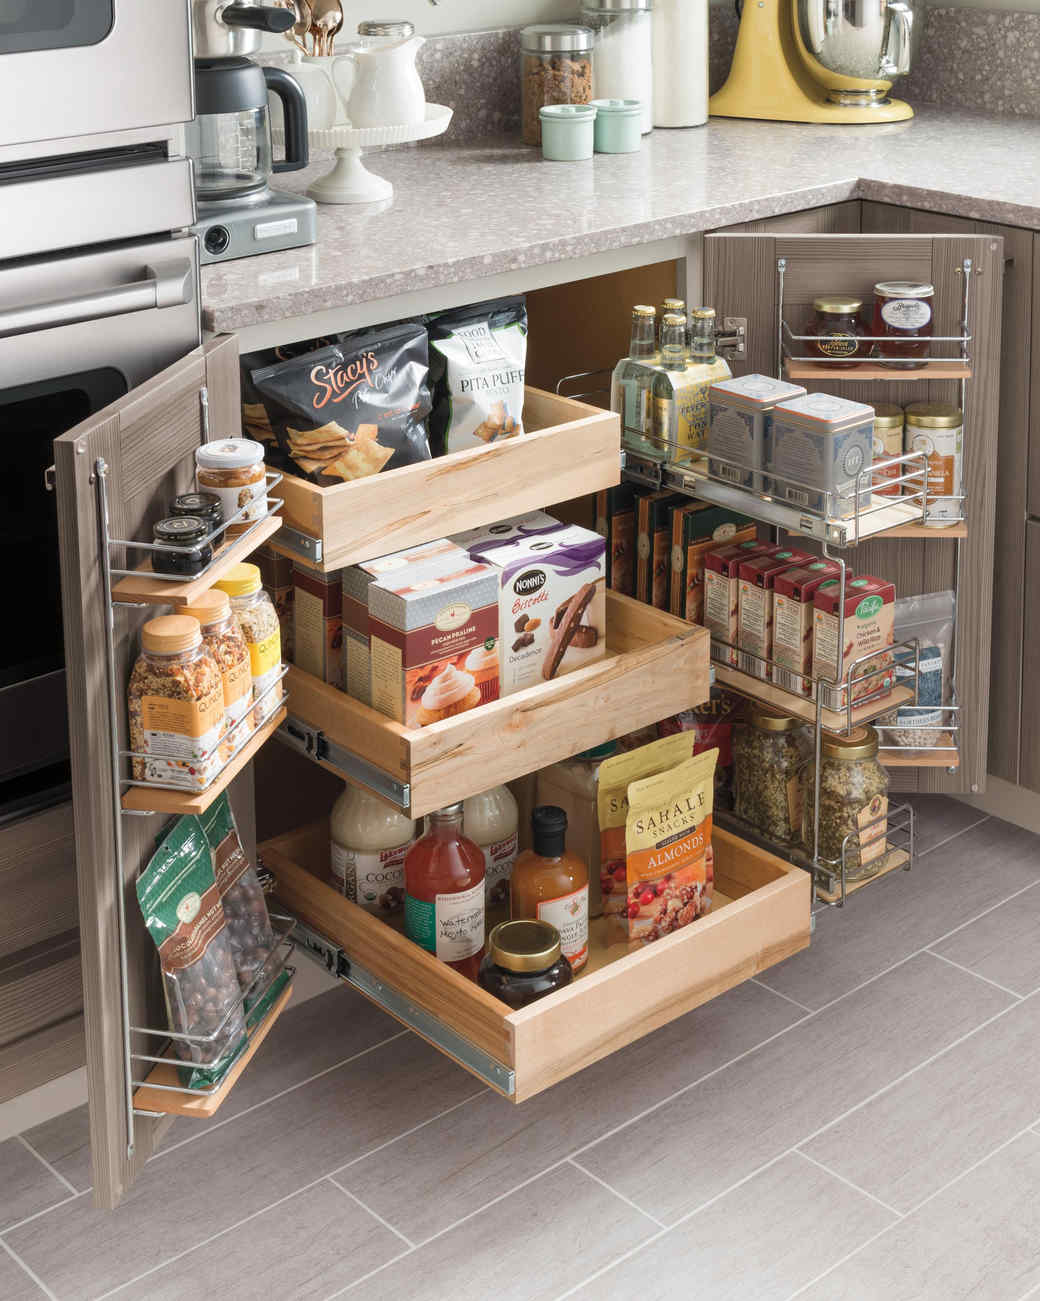 Best Kitchen Gallery: Small Kitchen Storage Ideas For A More Efficient Space Martha of Efficient Kitchen Cabinets on cal-ite.com